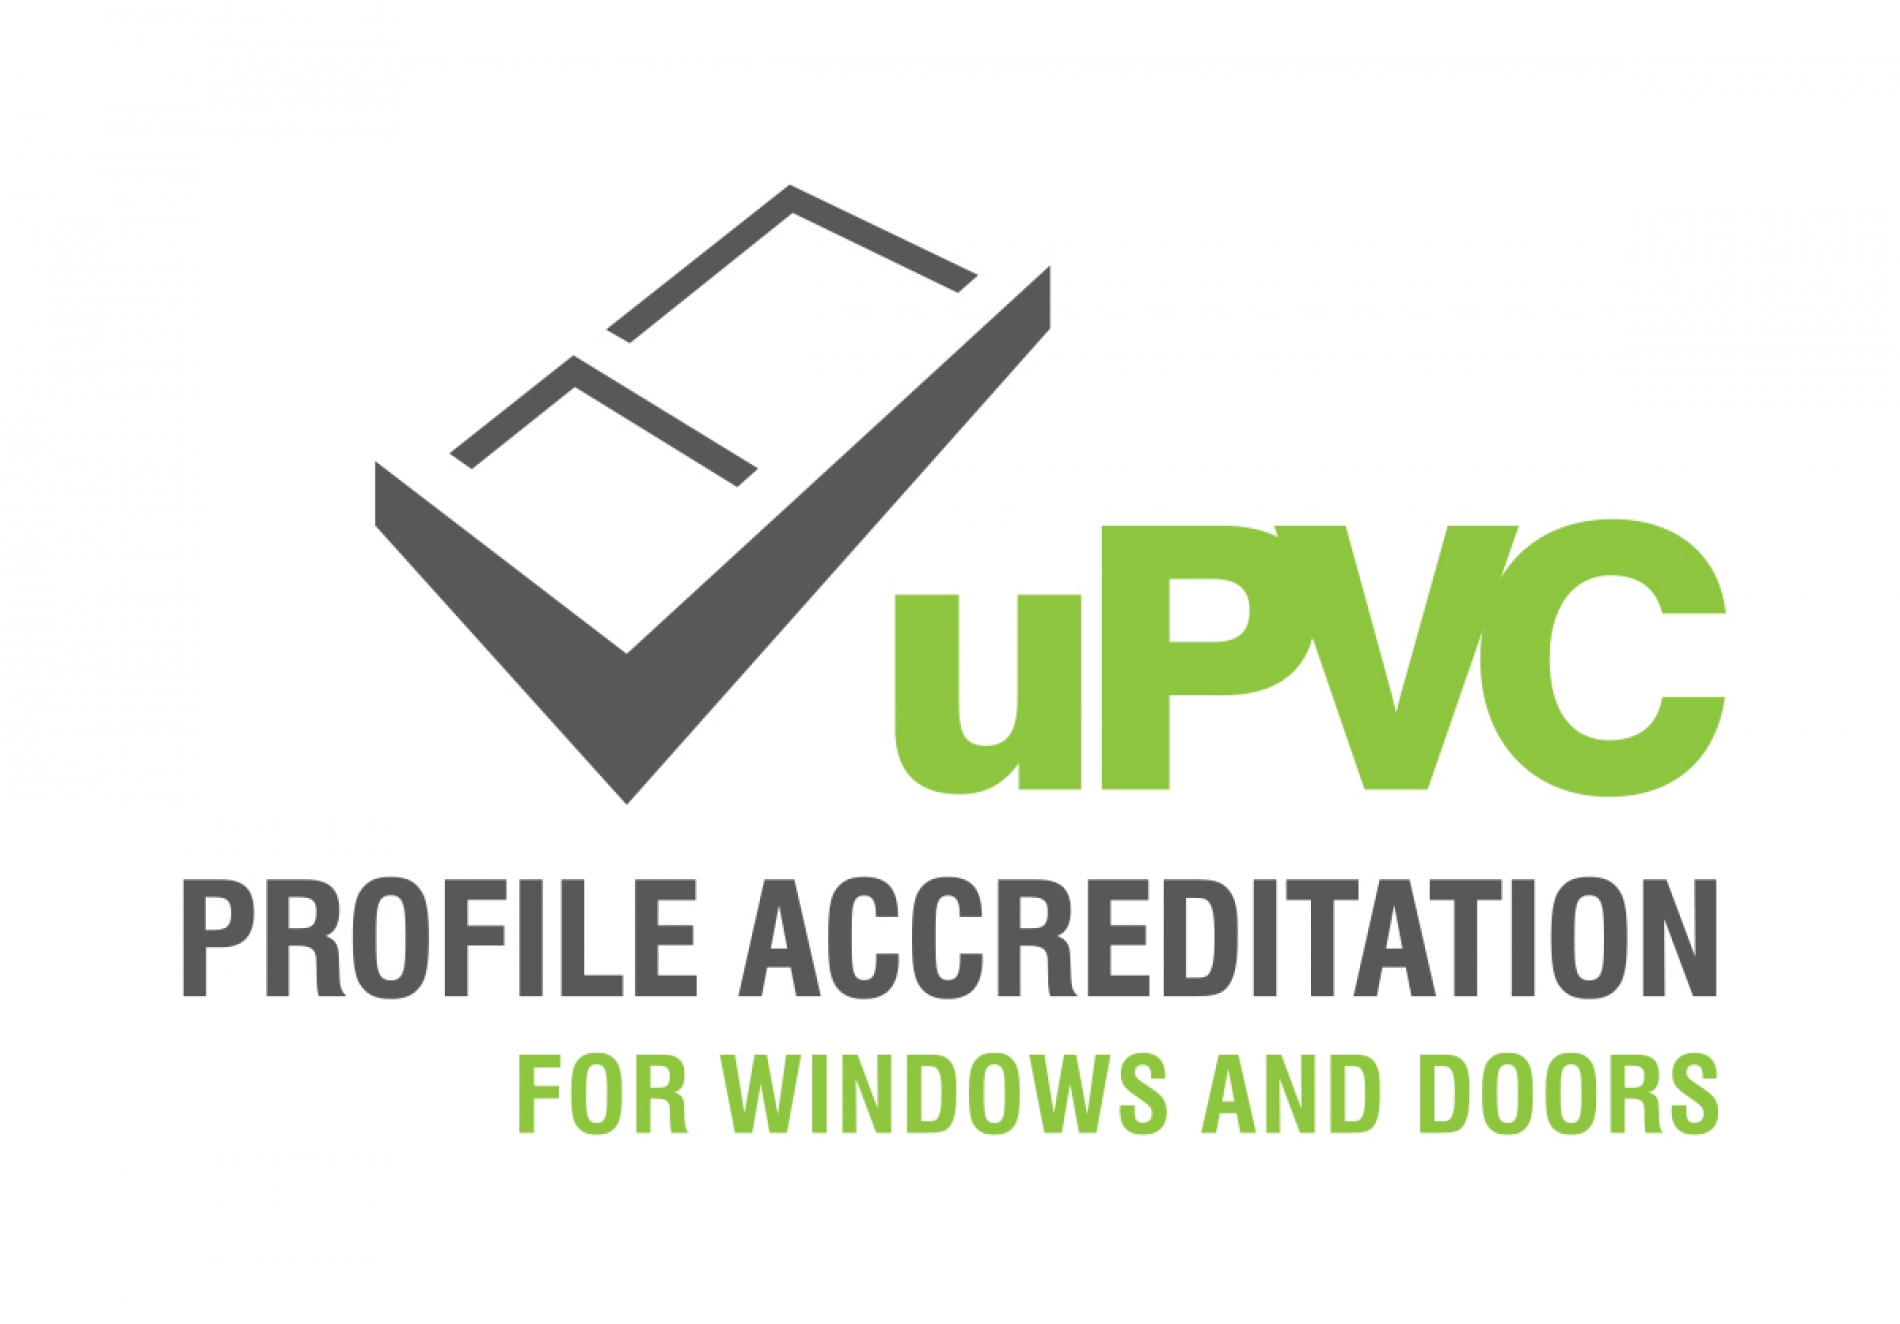 Plustec is the first uPVC window profile supplier to achieve national industry accreditation